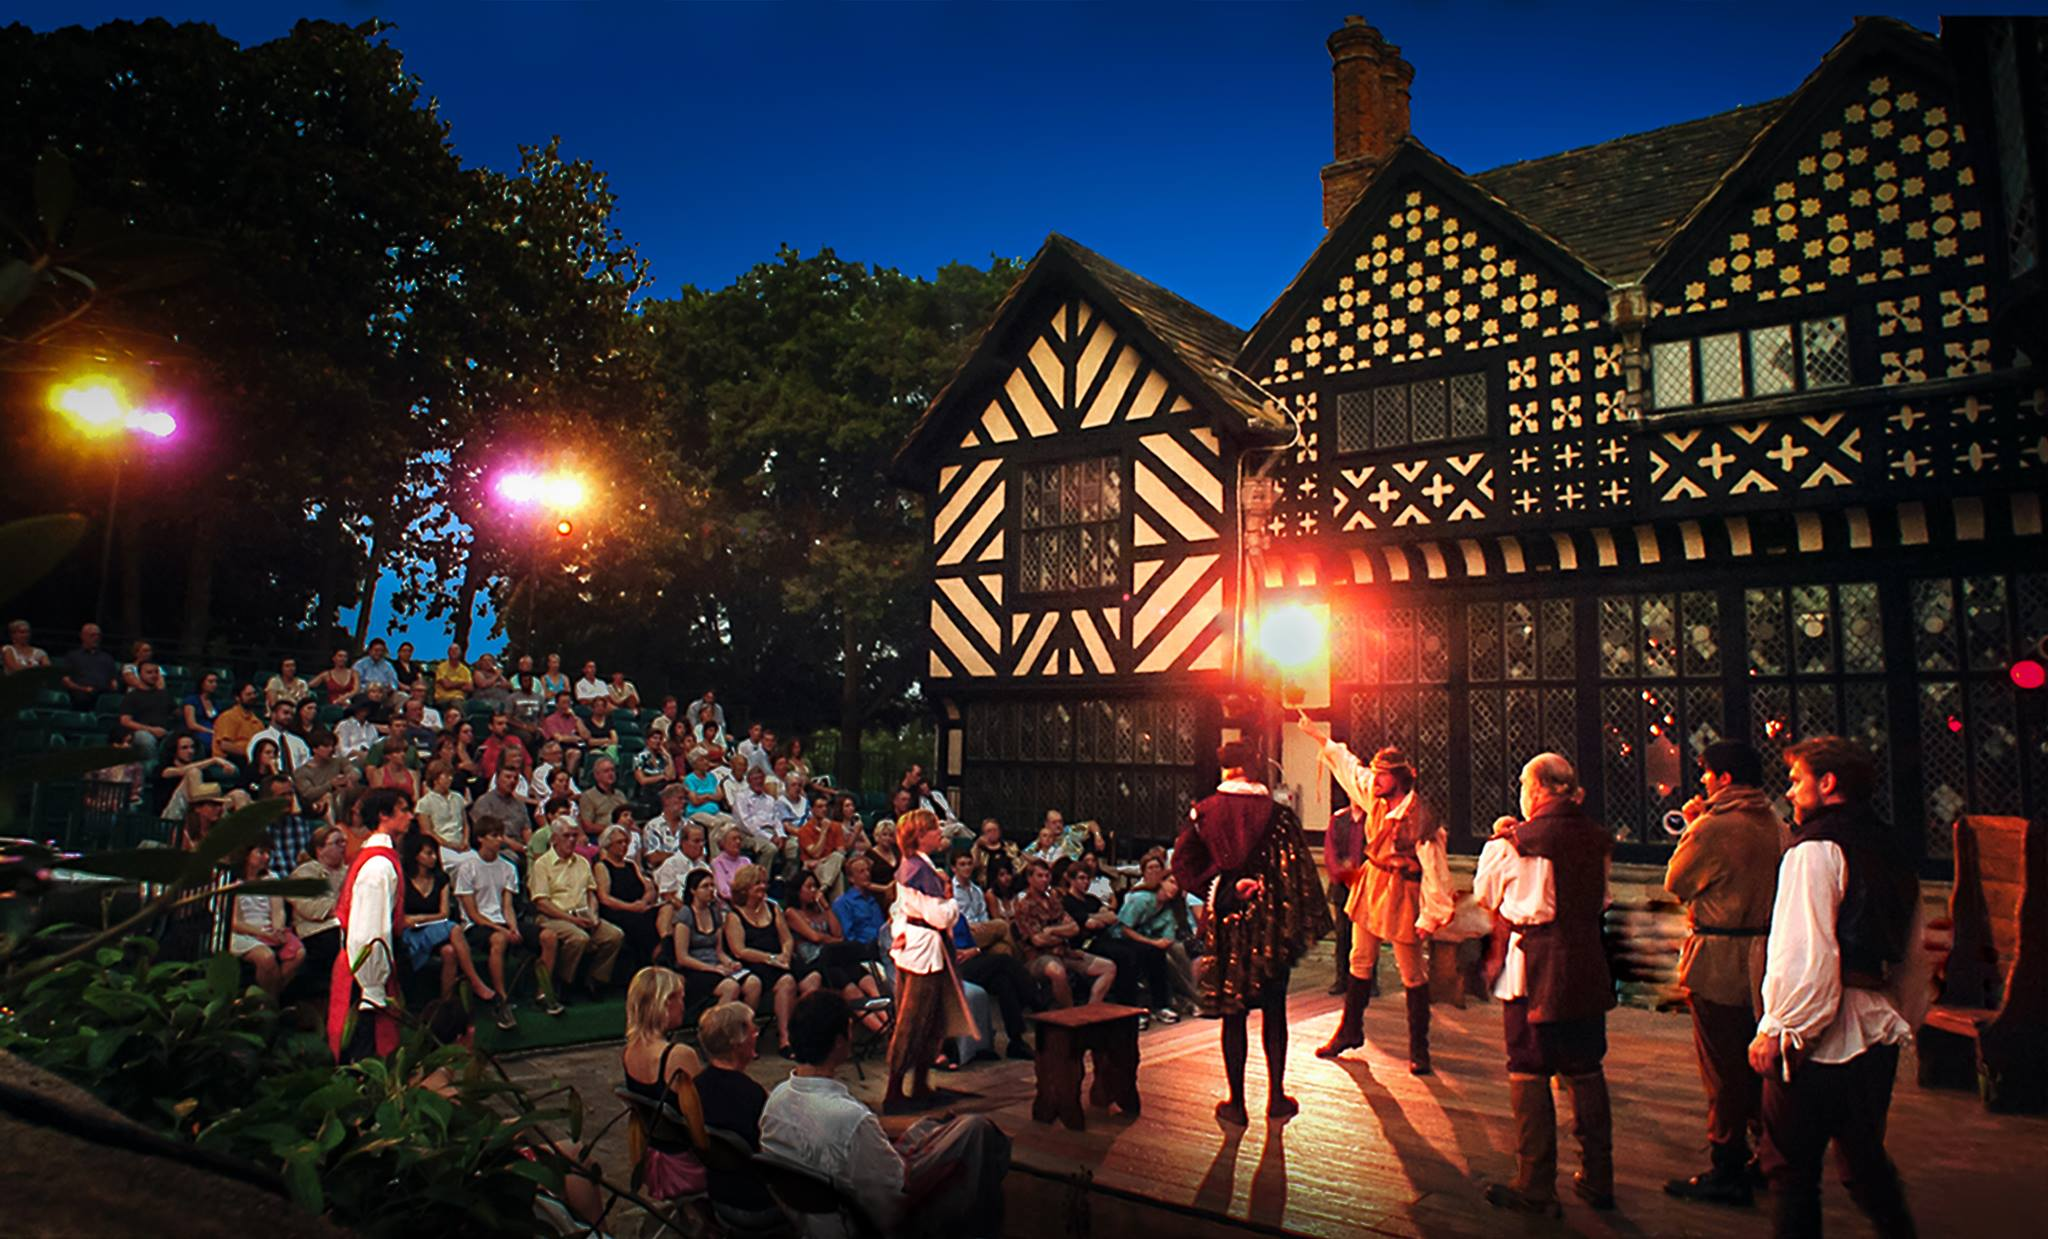 A Shakespearean play being preformed at Agecroft.